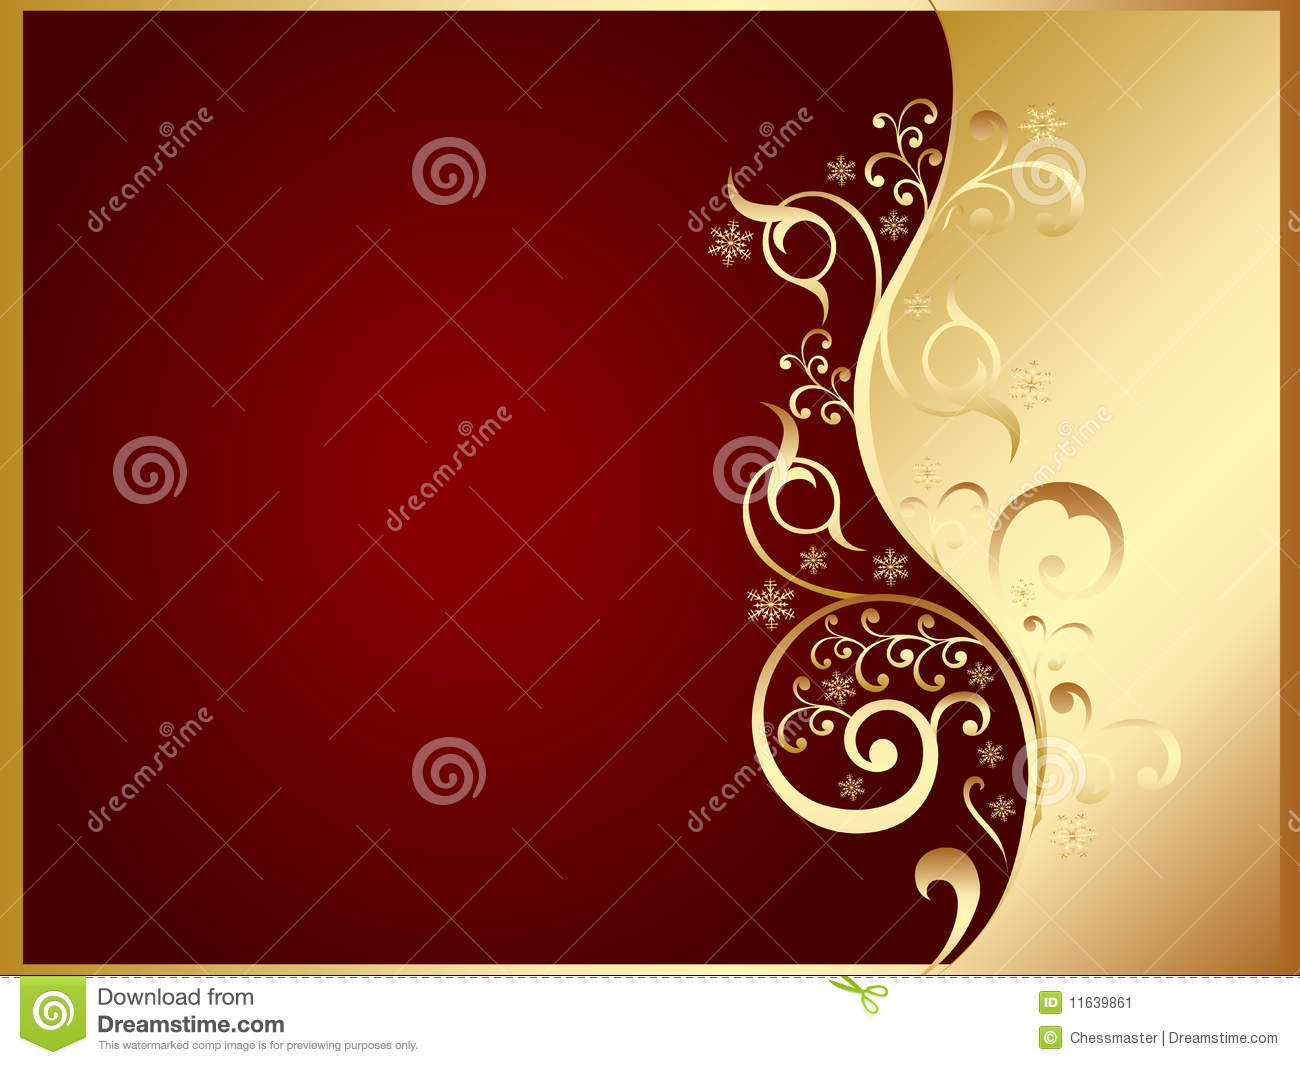 Stock Image Gold Red Invitation Card Image11639861 on Thank You Card Modern Graphics Cards For